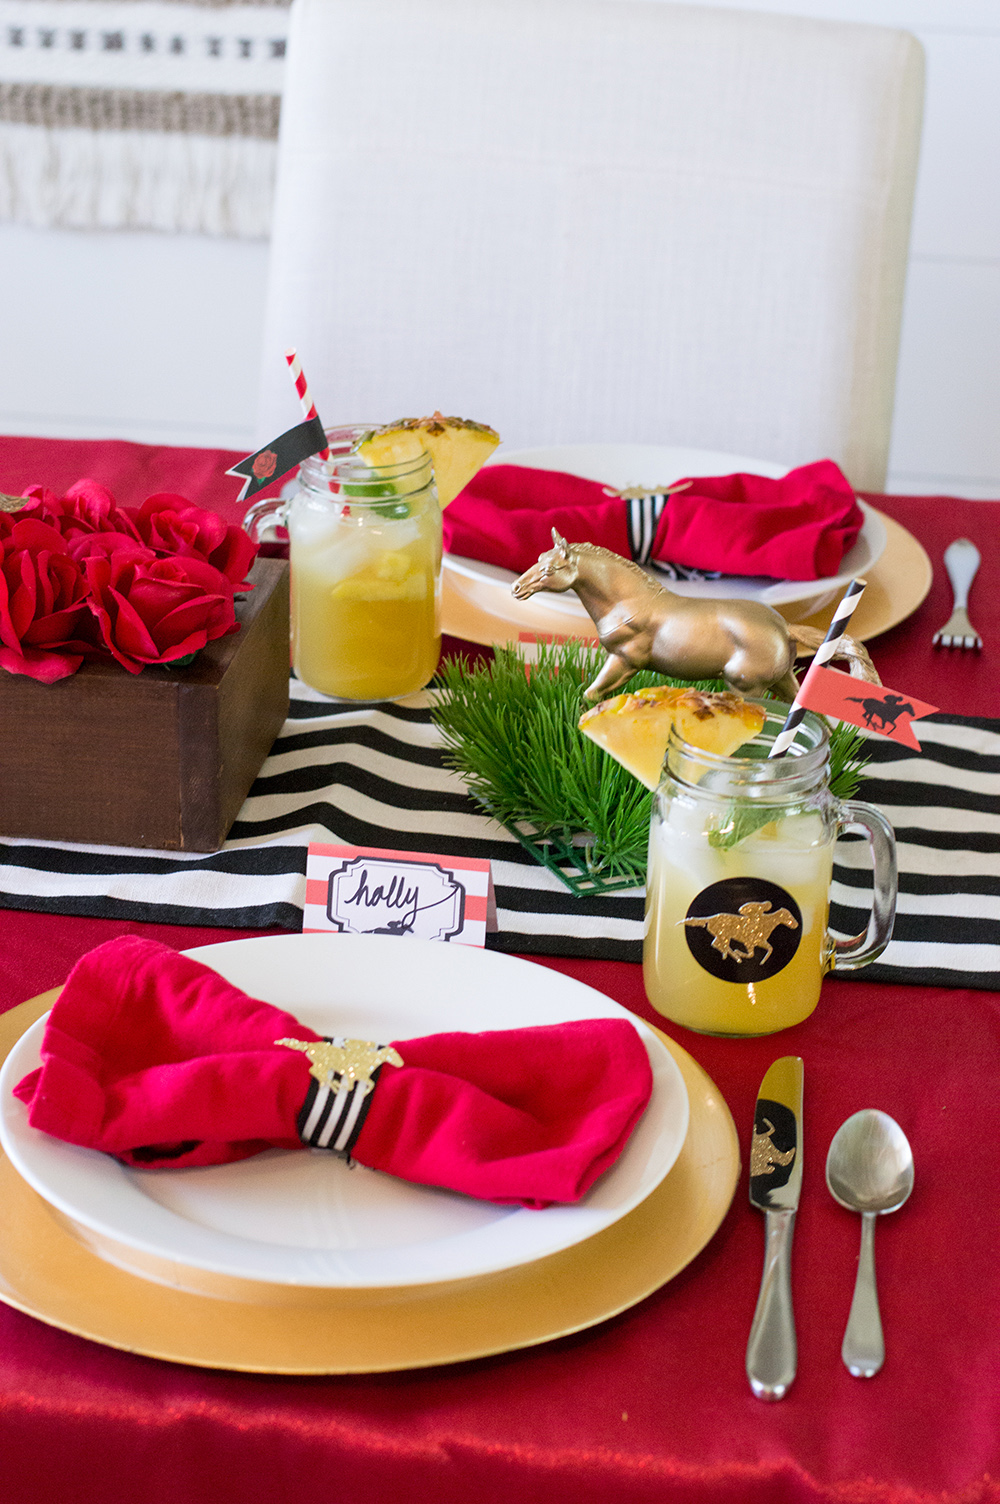 Bow tie red linen napkins with black and white ribbon make a perfect addition to a Kentucky Derby place setting.